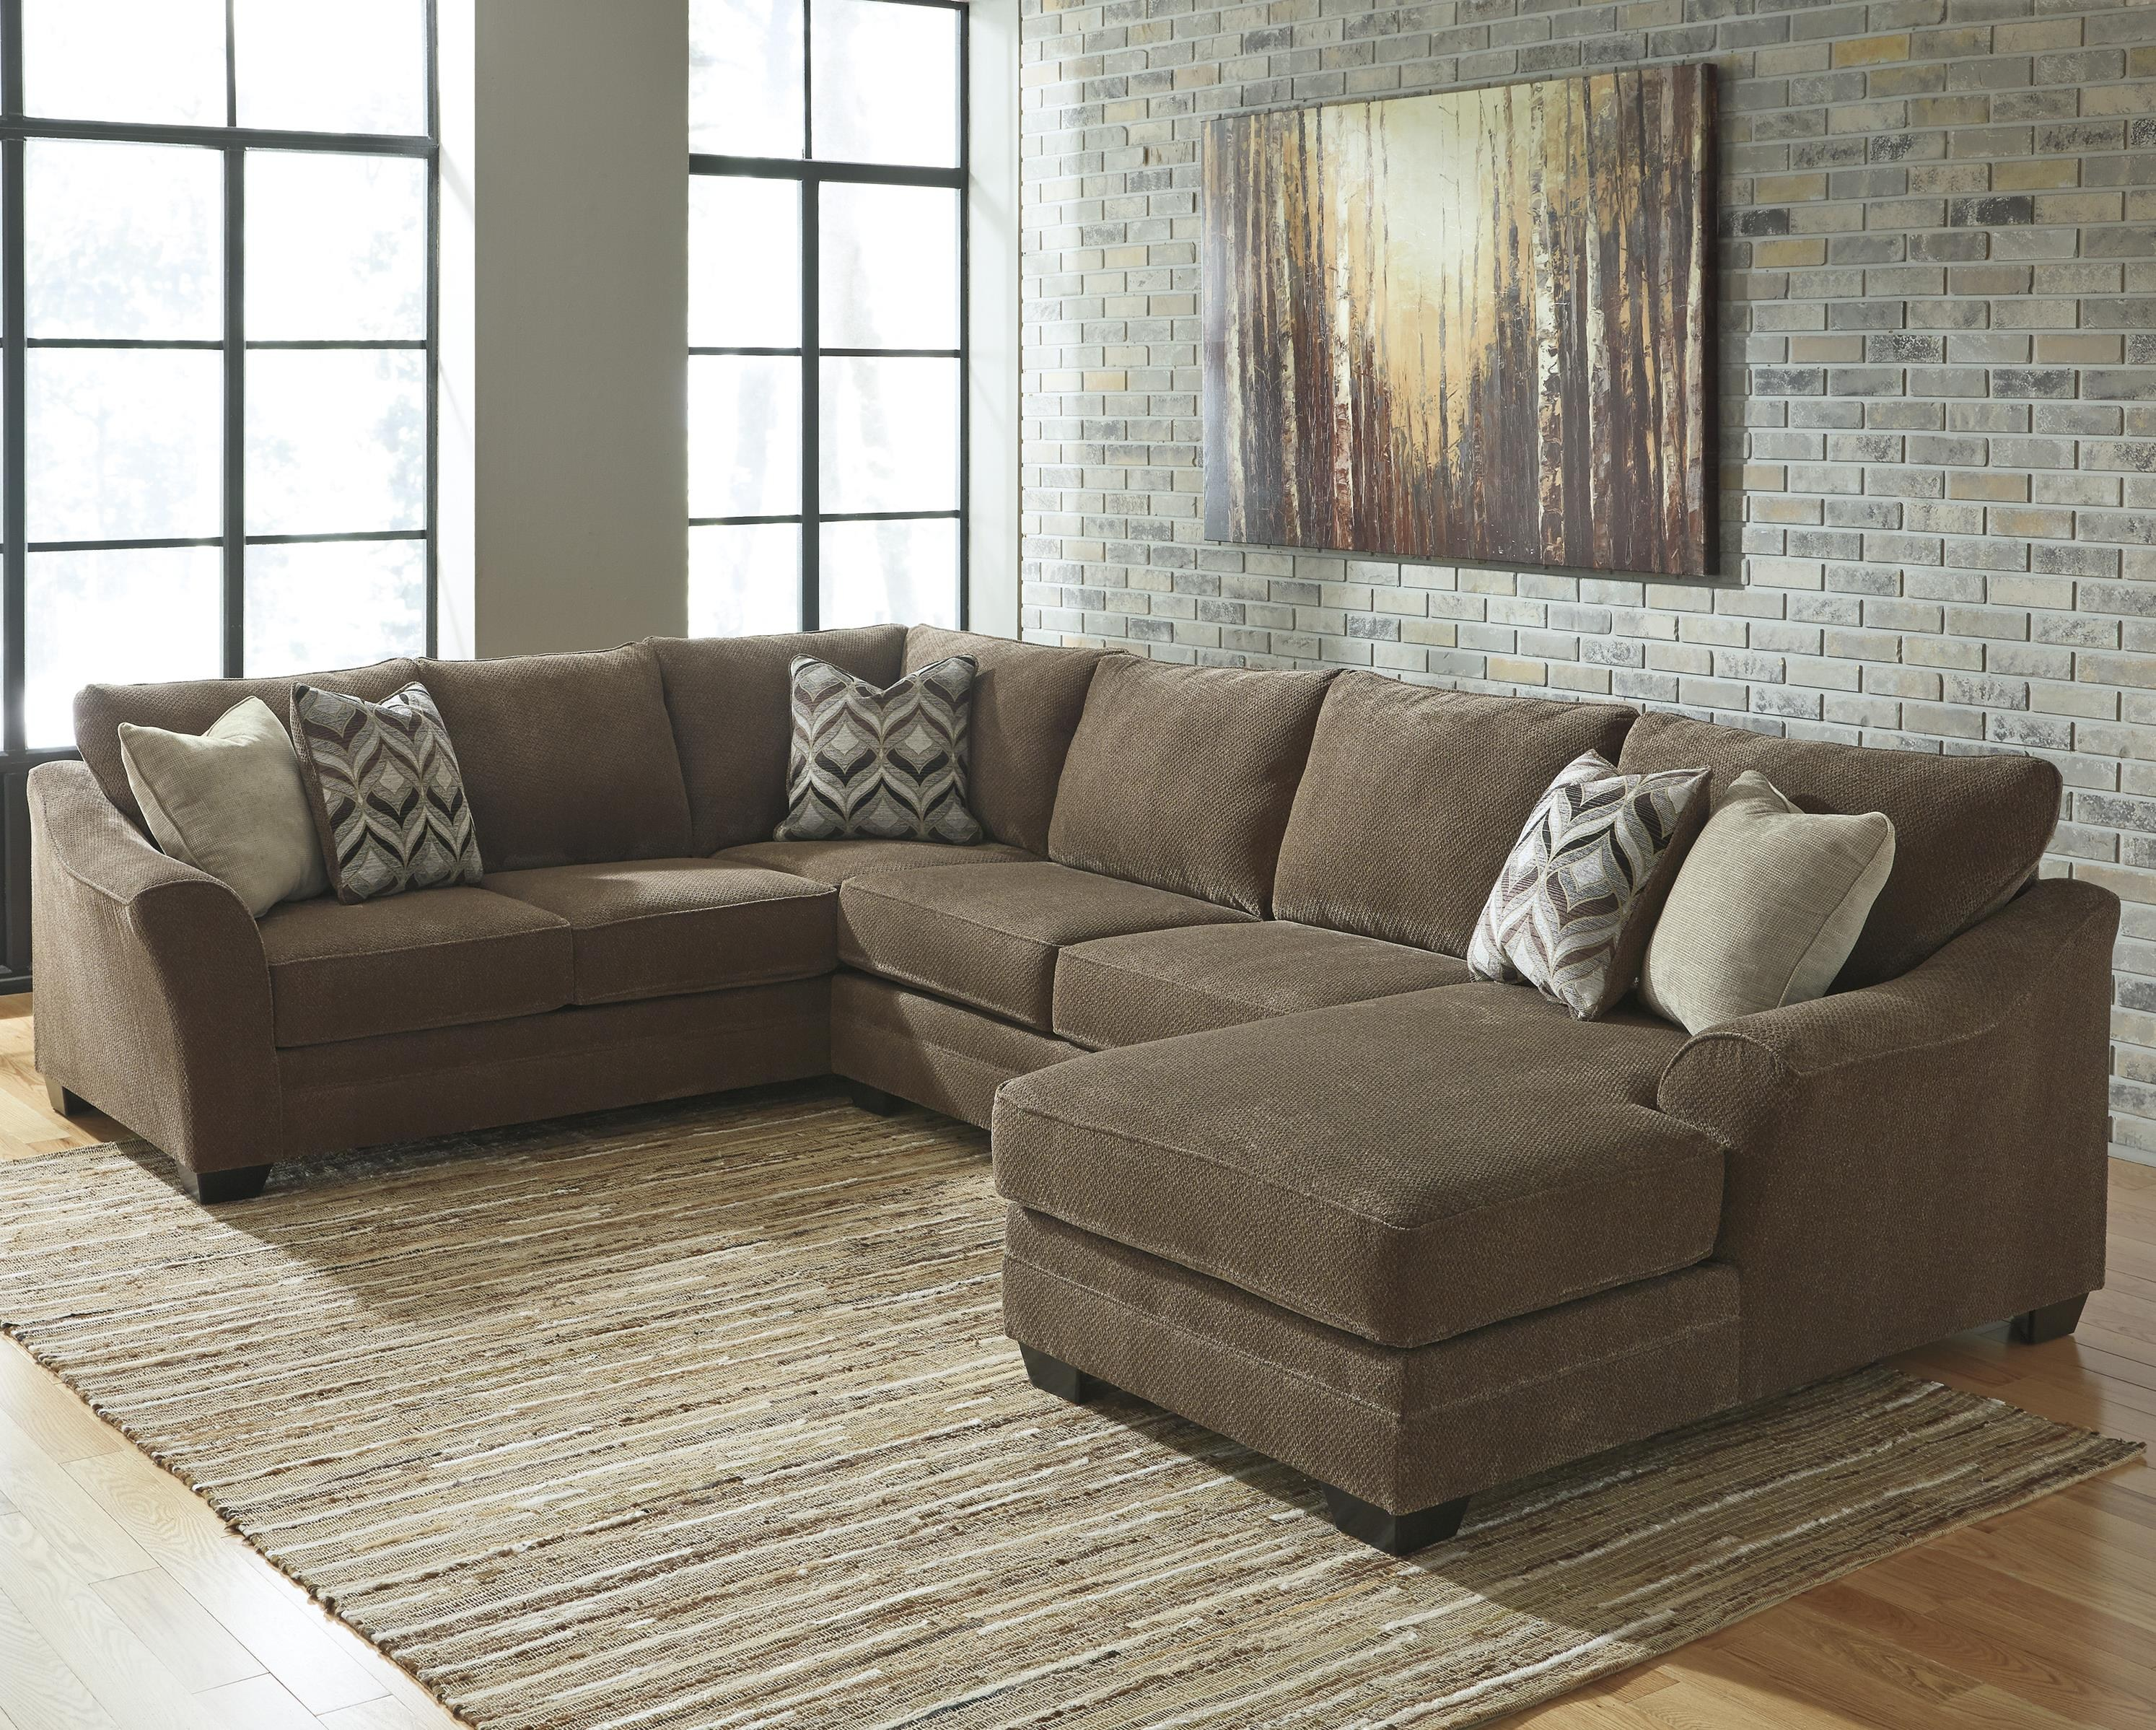 3 piece sectional sofa benchcraft justyna contemporary 3-piece sectional with right chaise JMUKONF